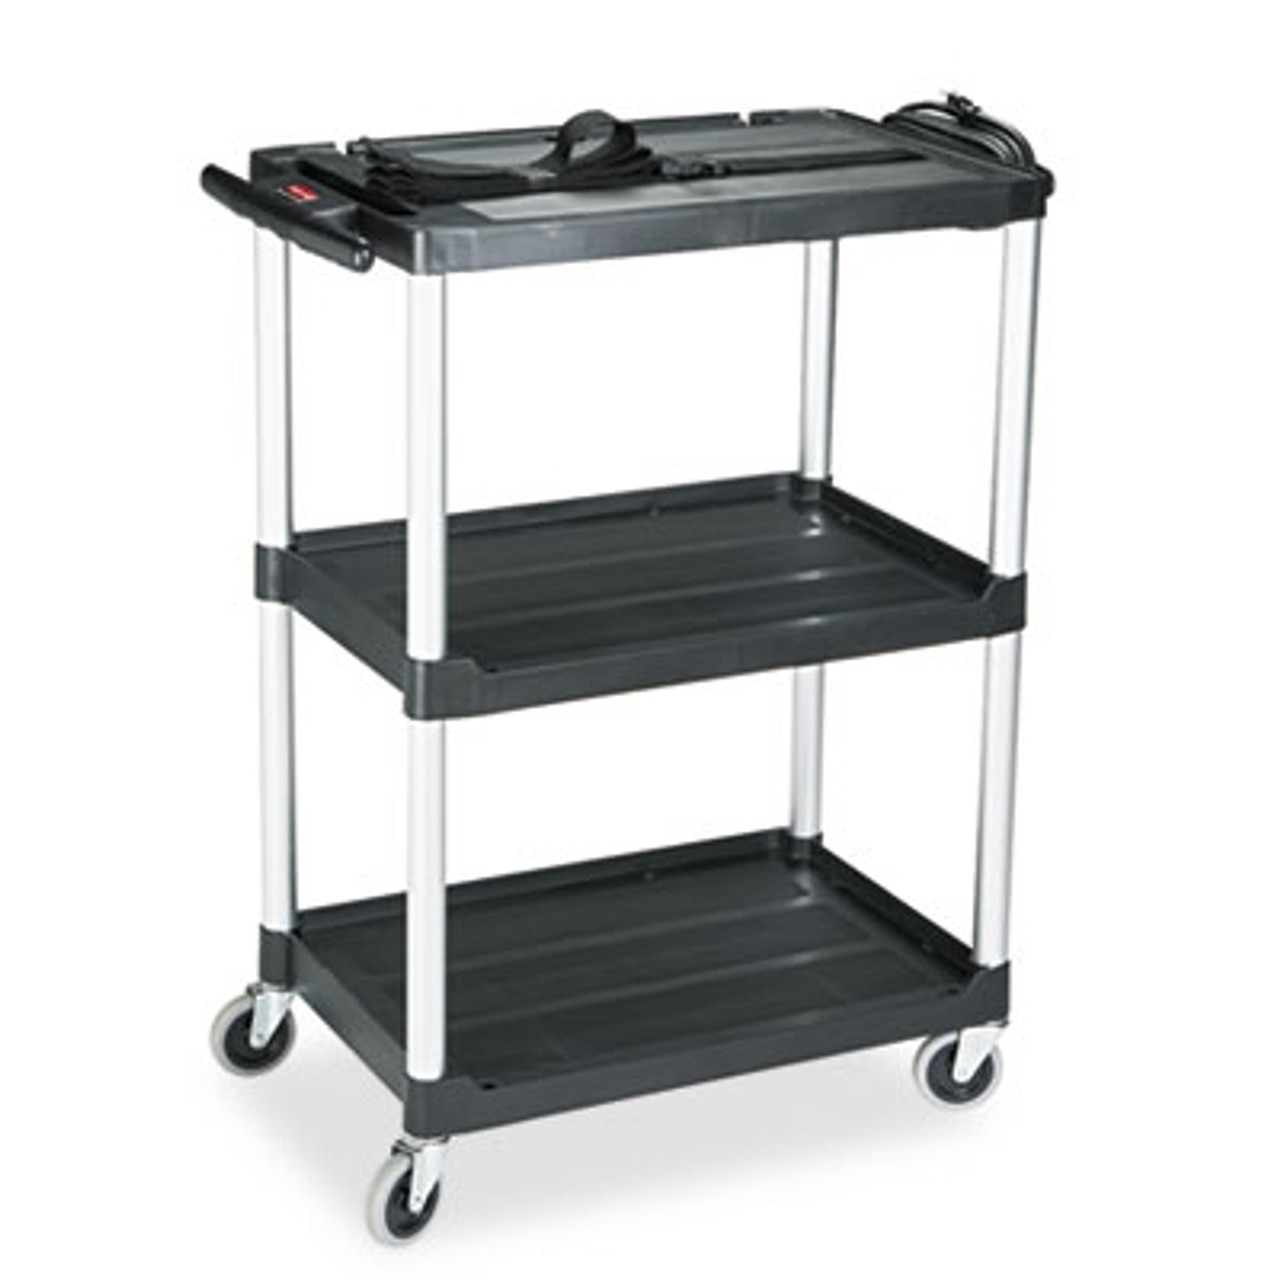 Rubbermaid Commercial Media Master AV Cart, 2-Shelf, 18-3/4w x 32-3/4d x 42h, Black